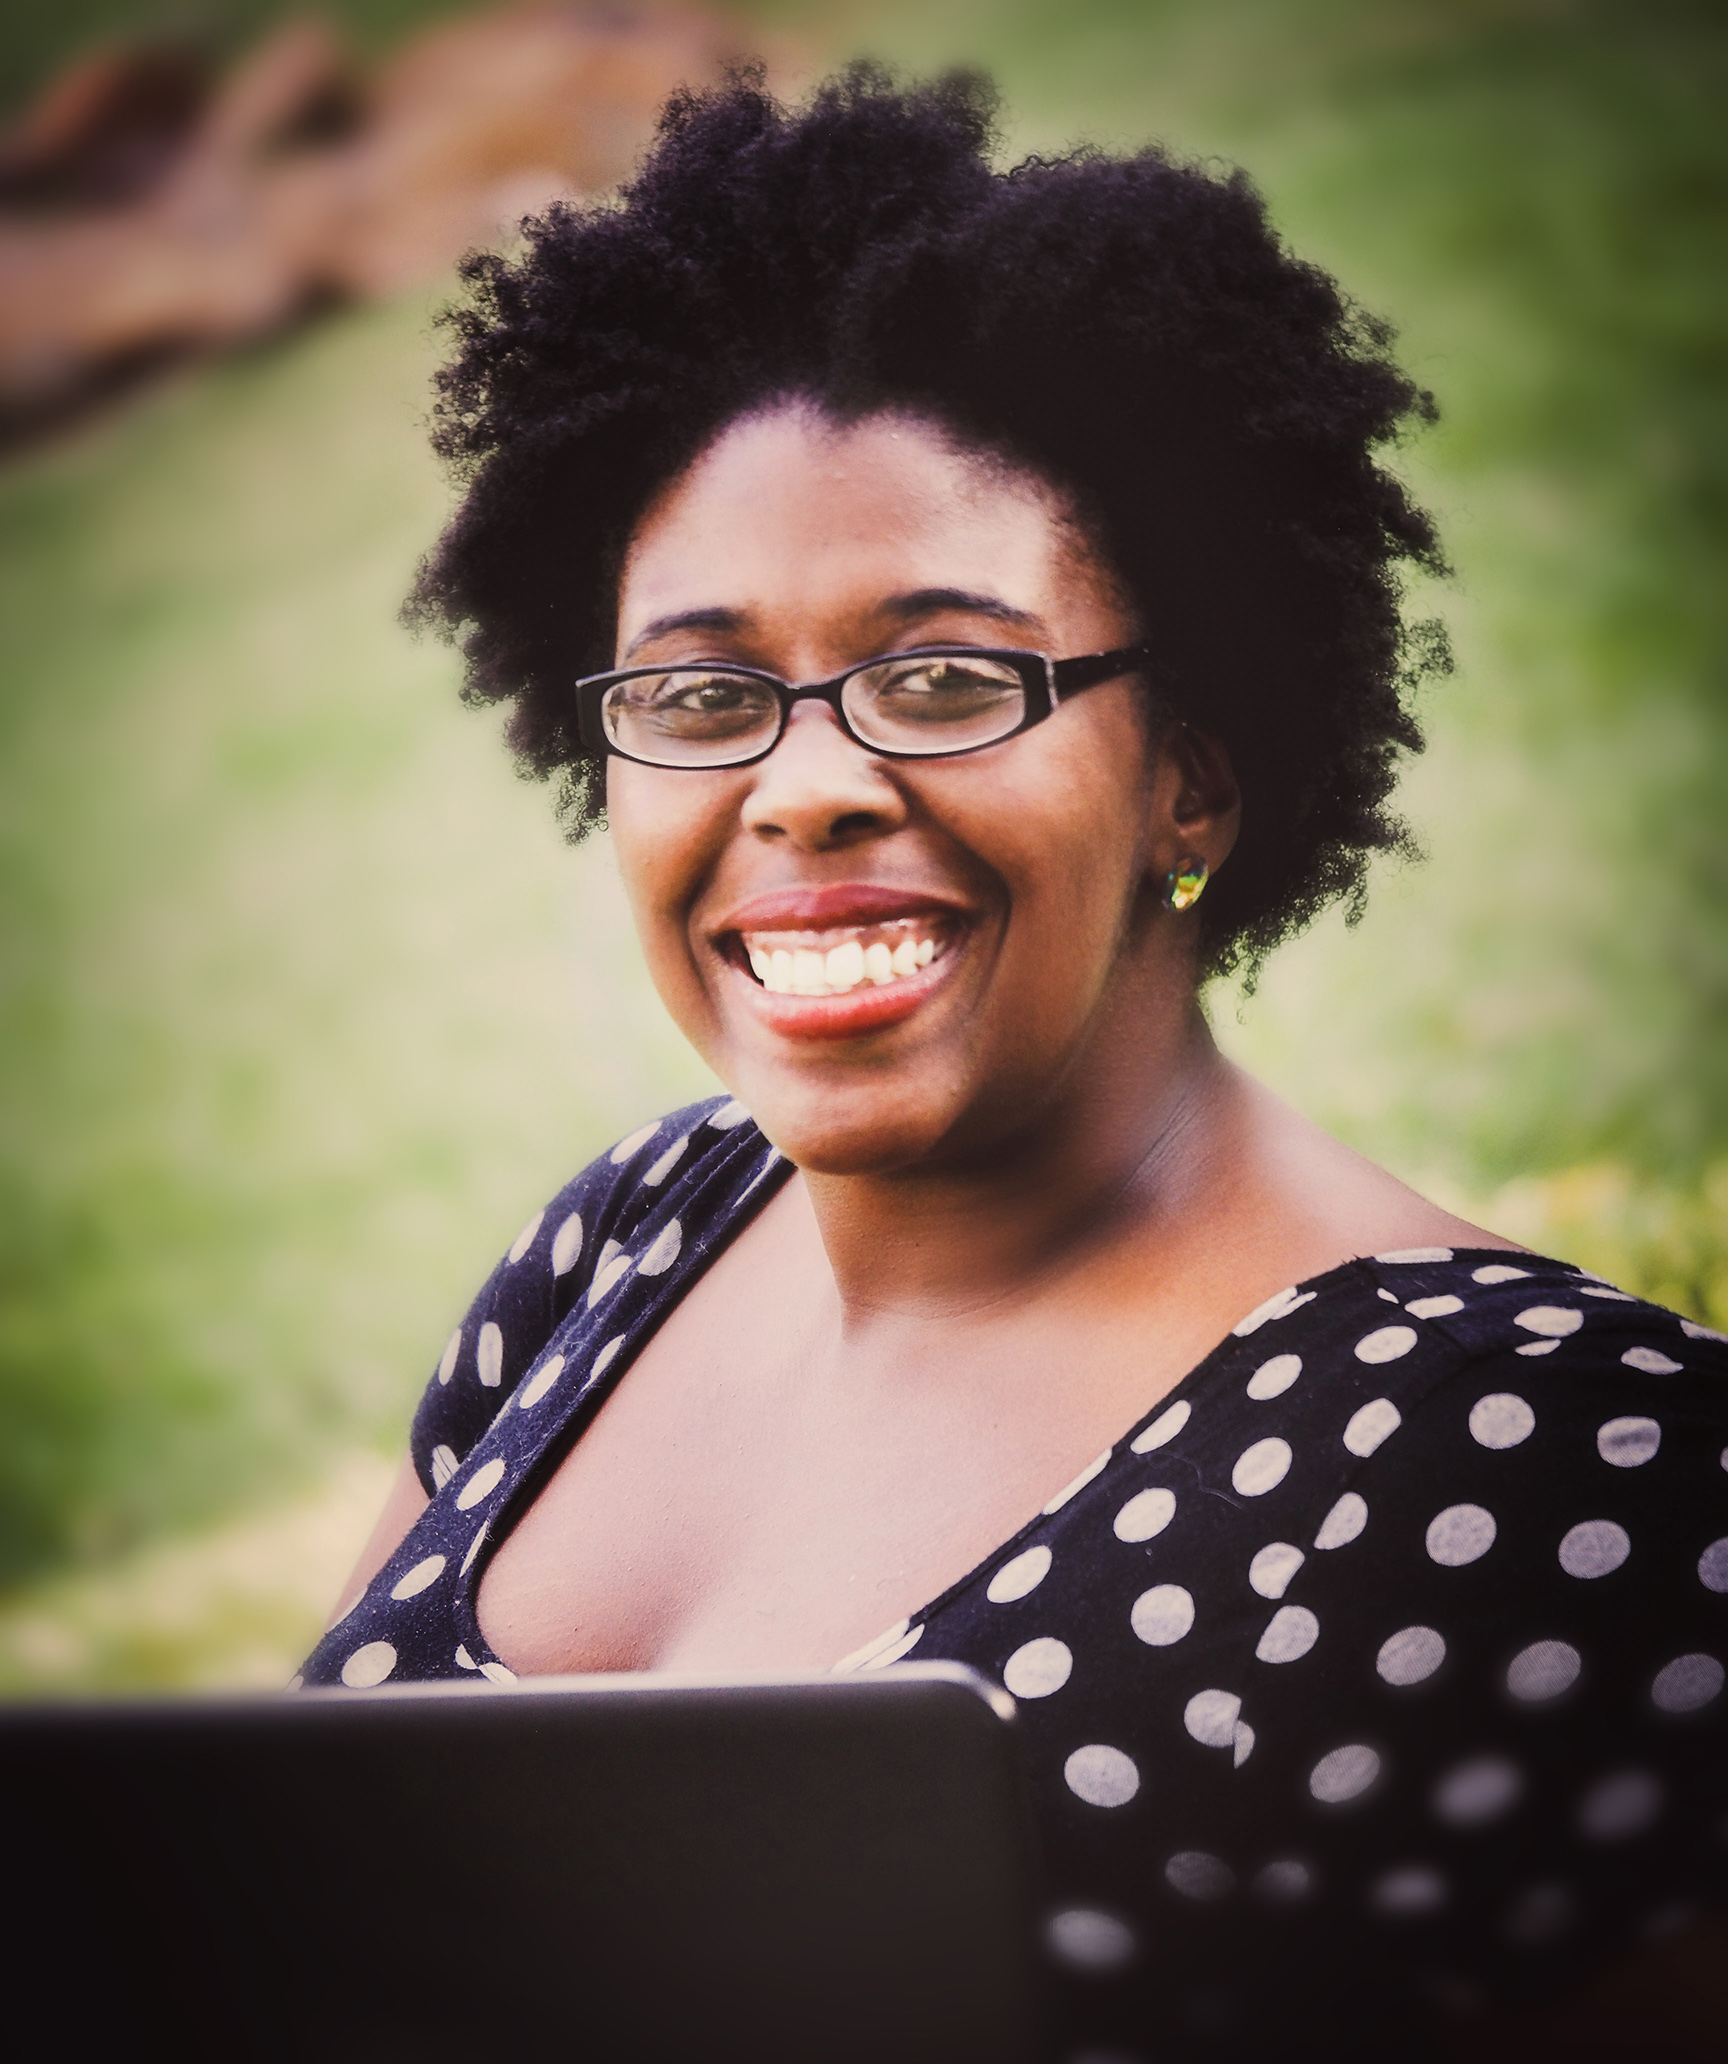 Noelle Brooks, marketing storytelelr, is smiling at the camera in front of a laptop.